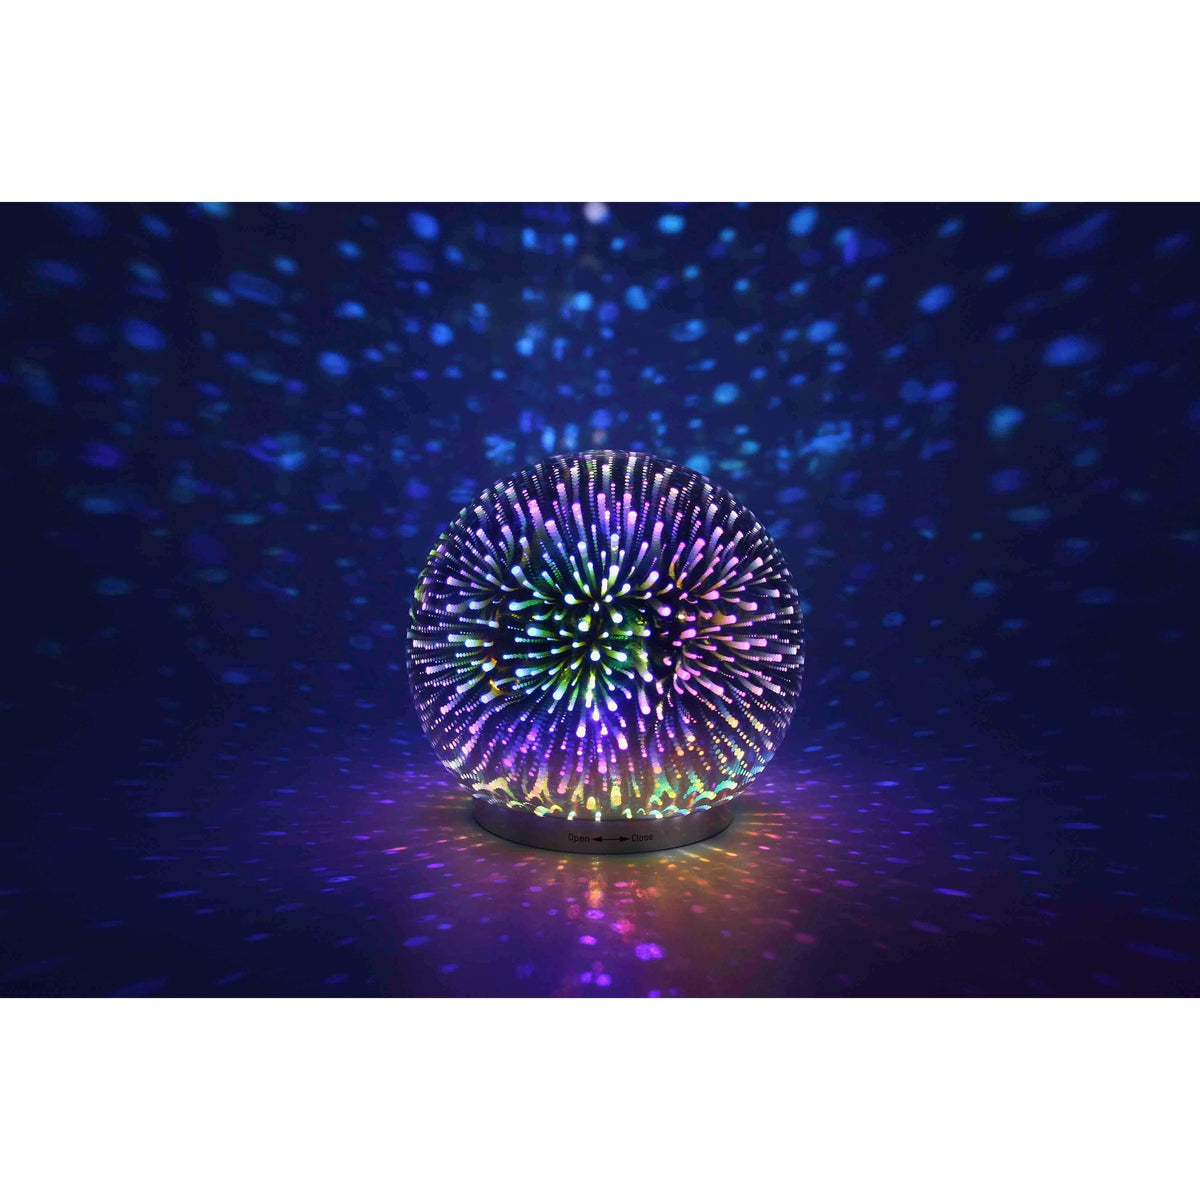 Infinity Mirror Ball LED Light